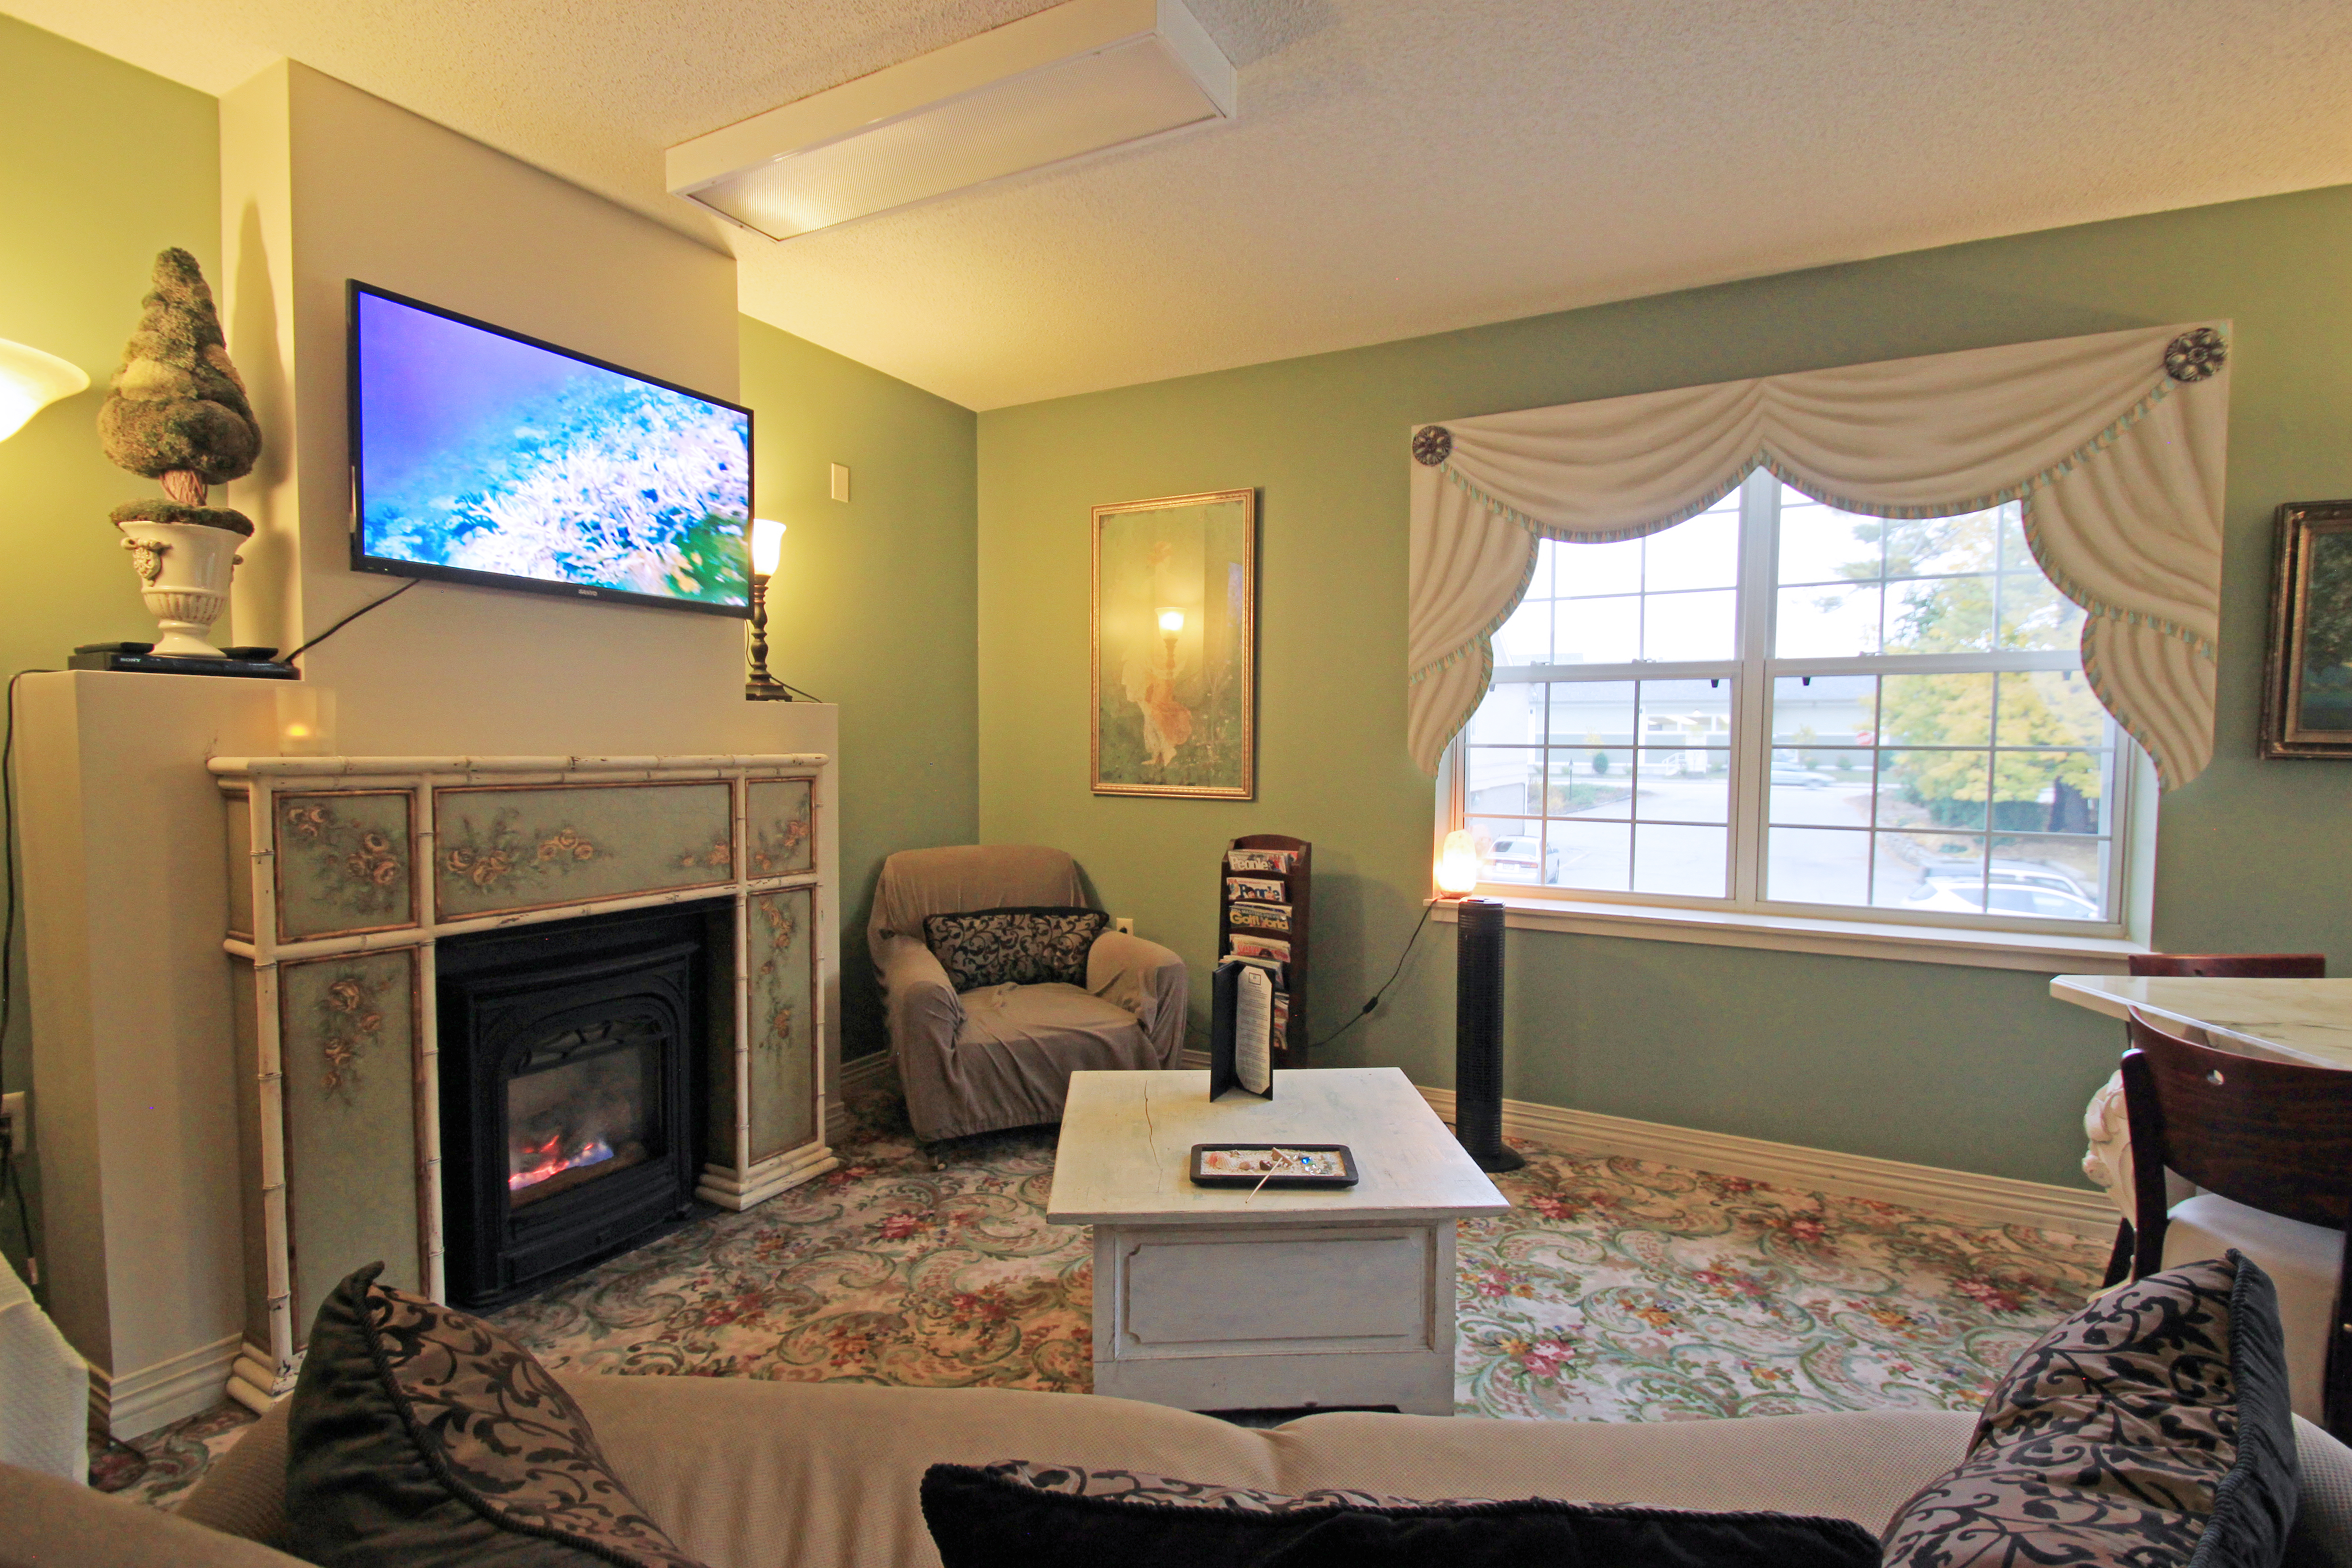 augusta maine spa relax with a spa getaway at the senator inn